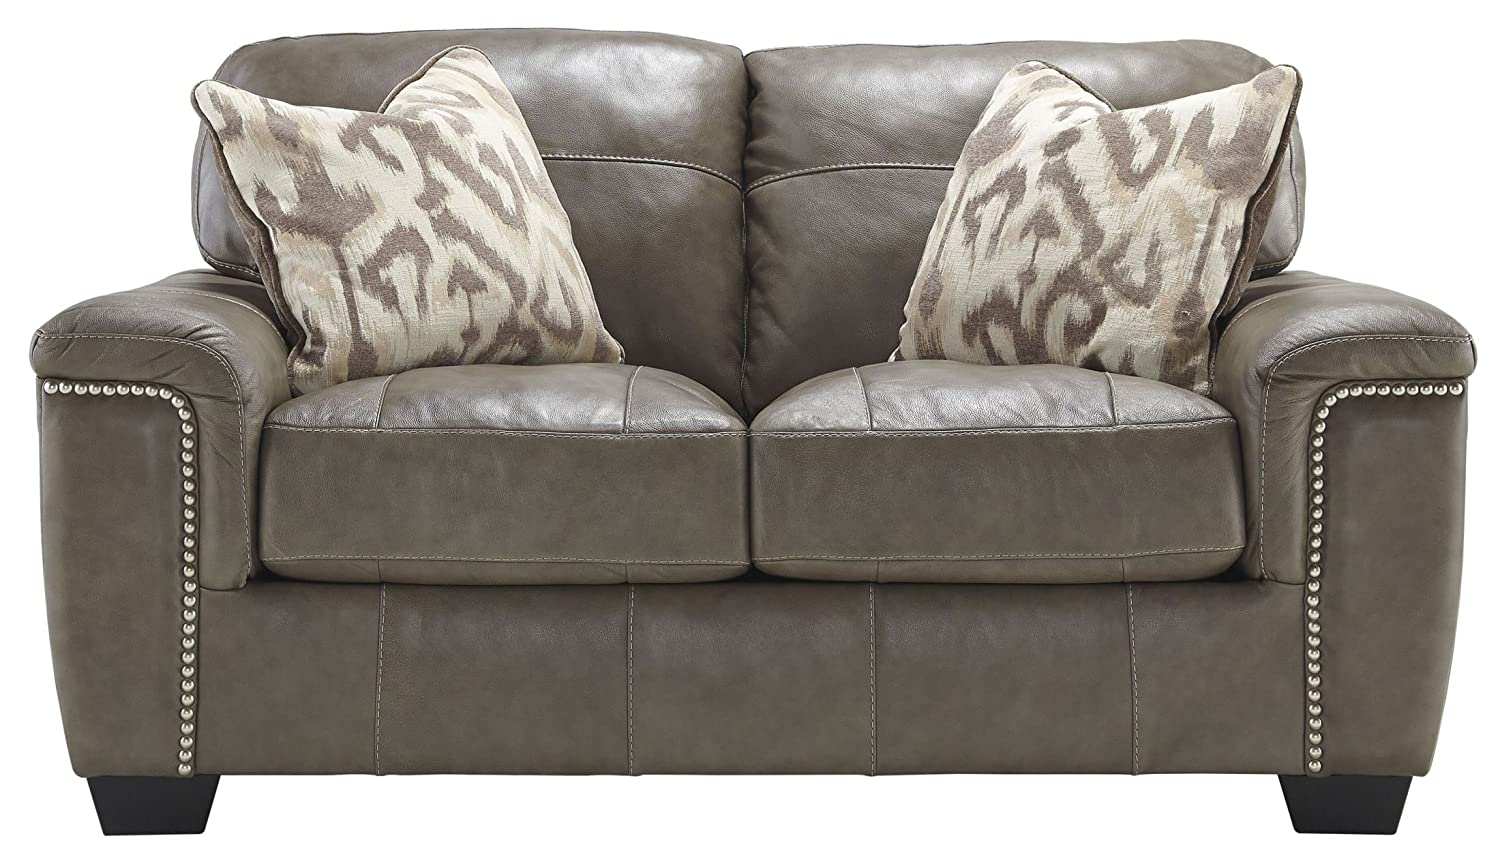 Ashley Donnell Leather Loveseat in Granite